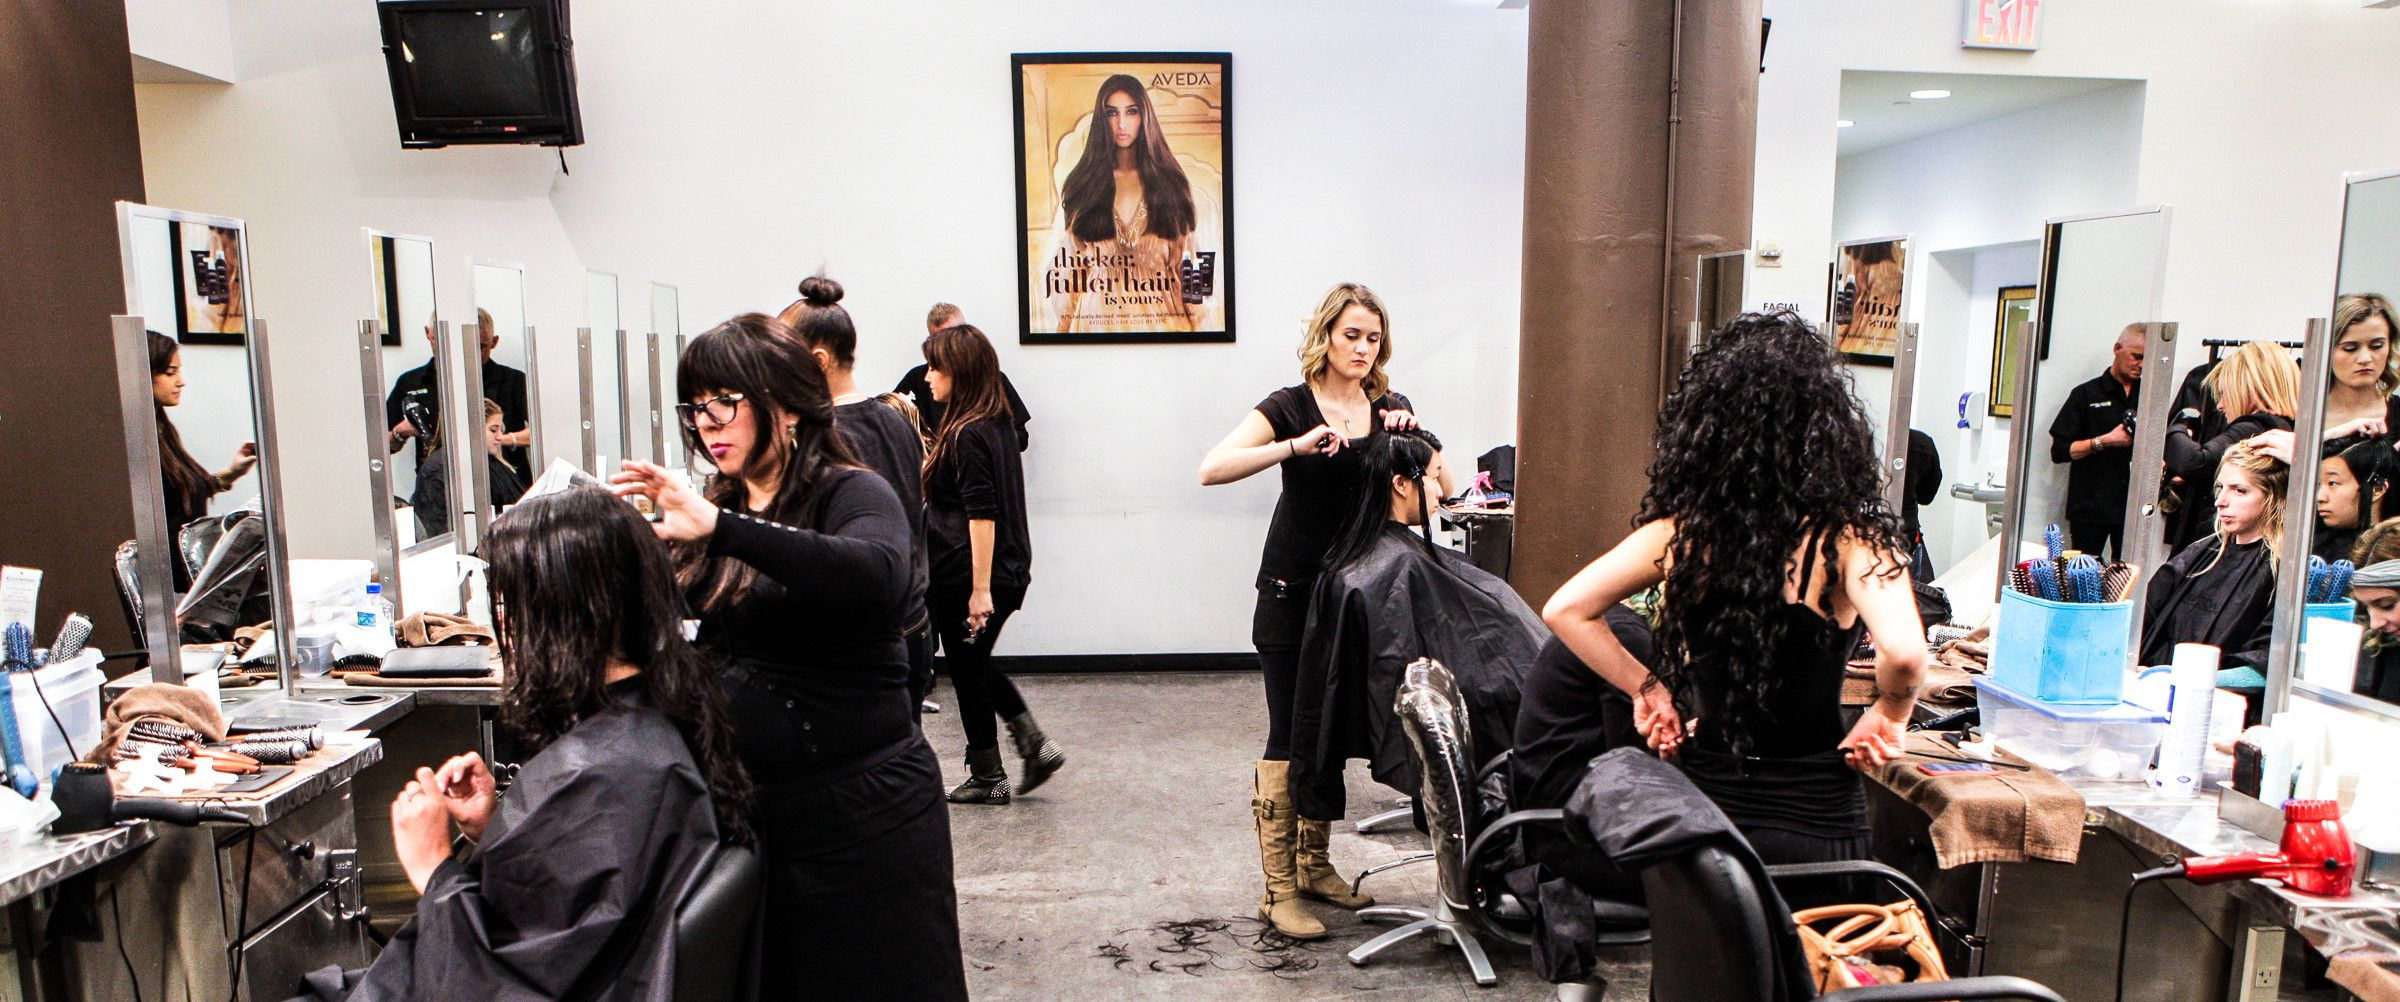 Guest Services   Aveda Institute Minneapolis   Best cosmetology ...